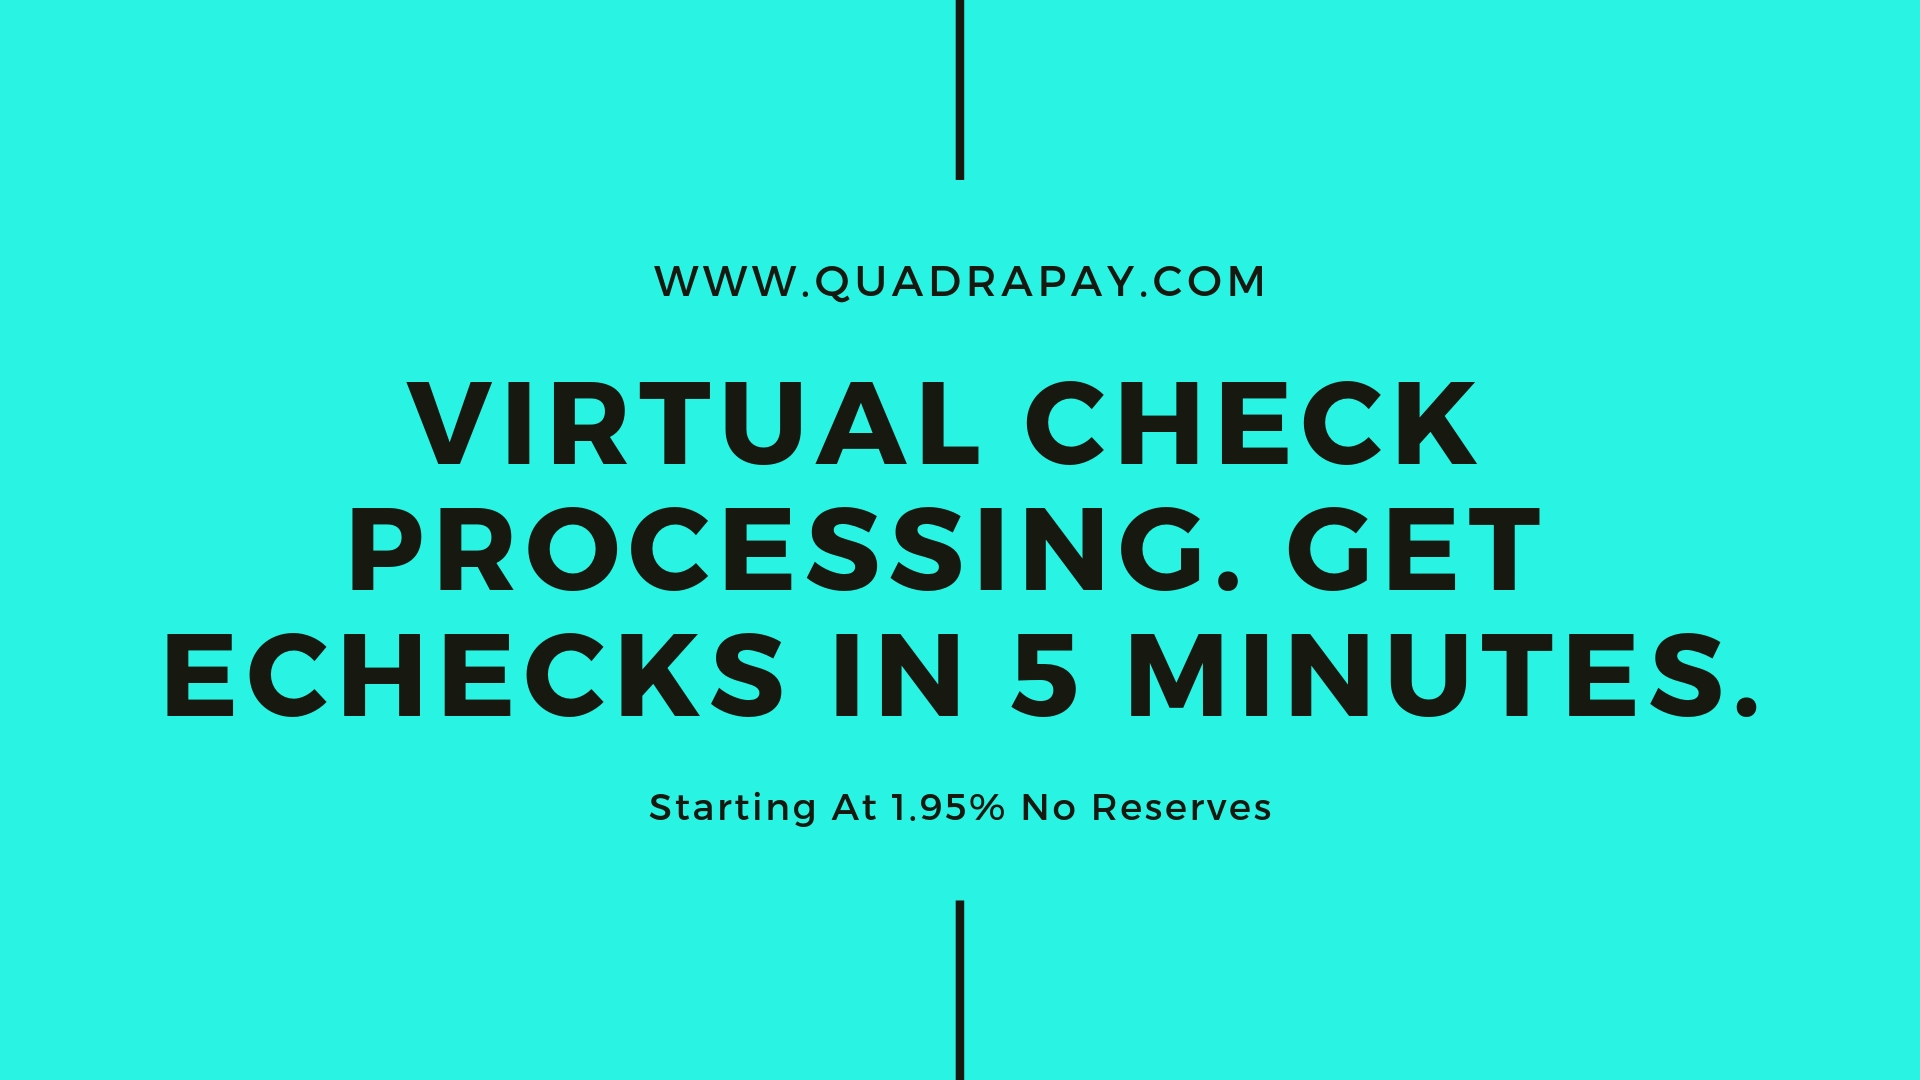 Virtual Check Processing By Quadrapay